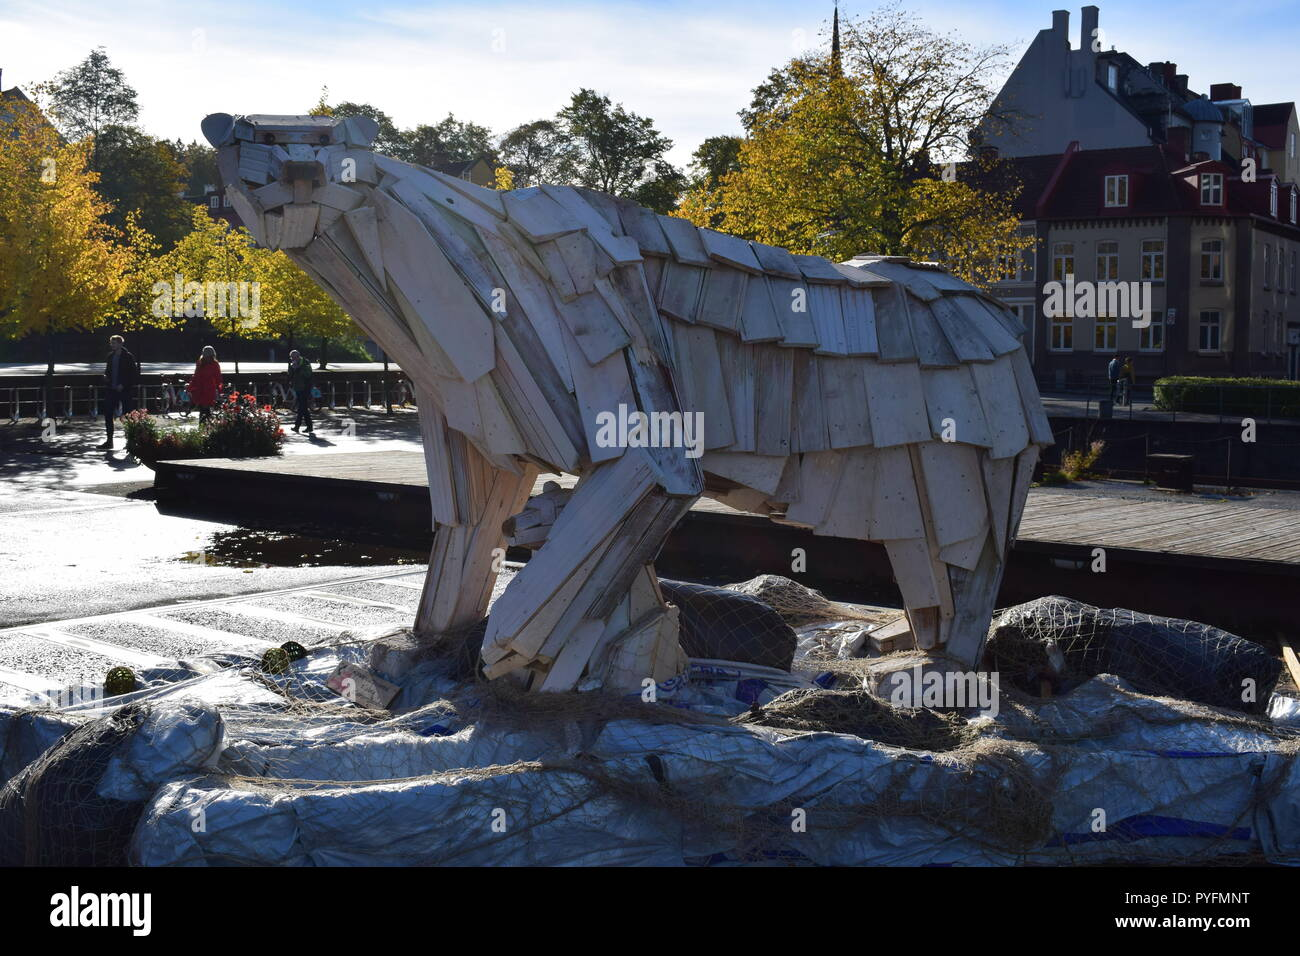 Polar bear with a cub, sculptures made of recycled wood planks, Solsiden , Trondheim , Norway - Stock Image